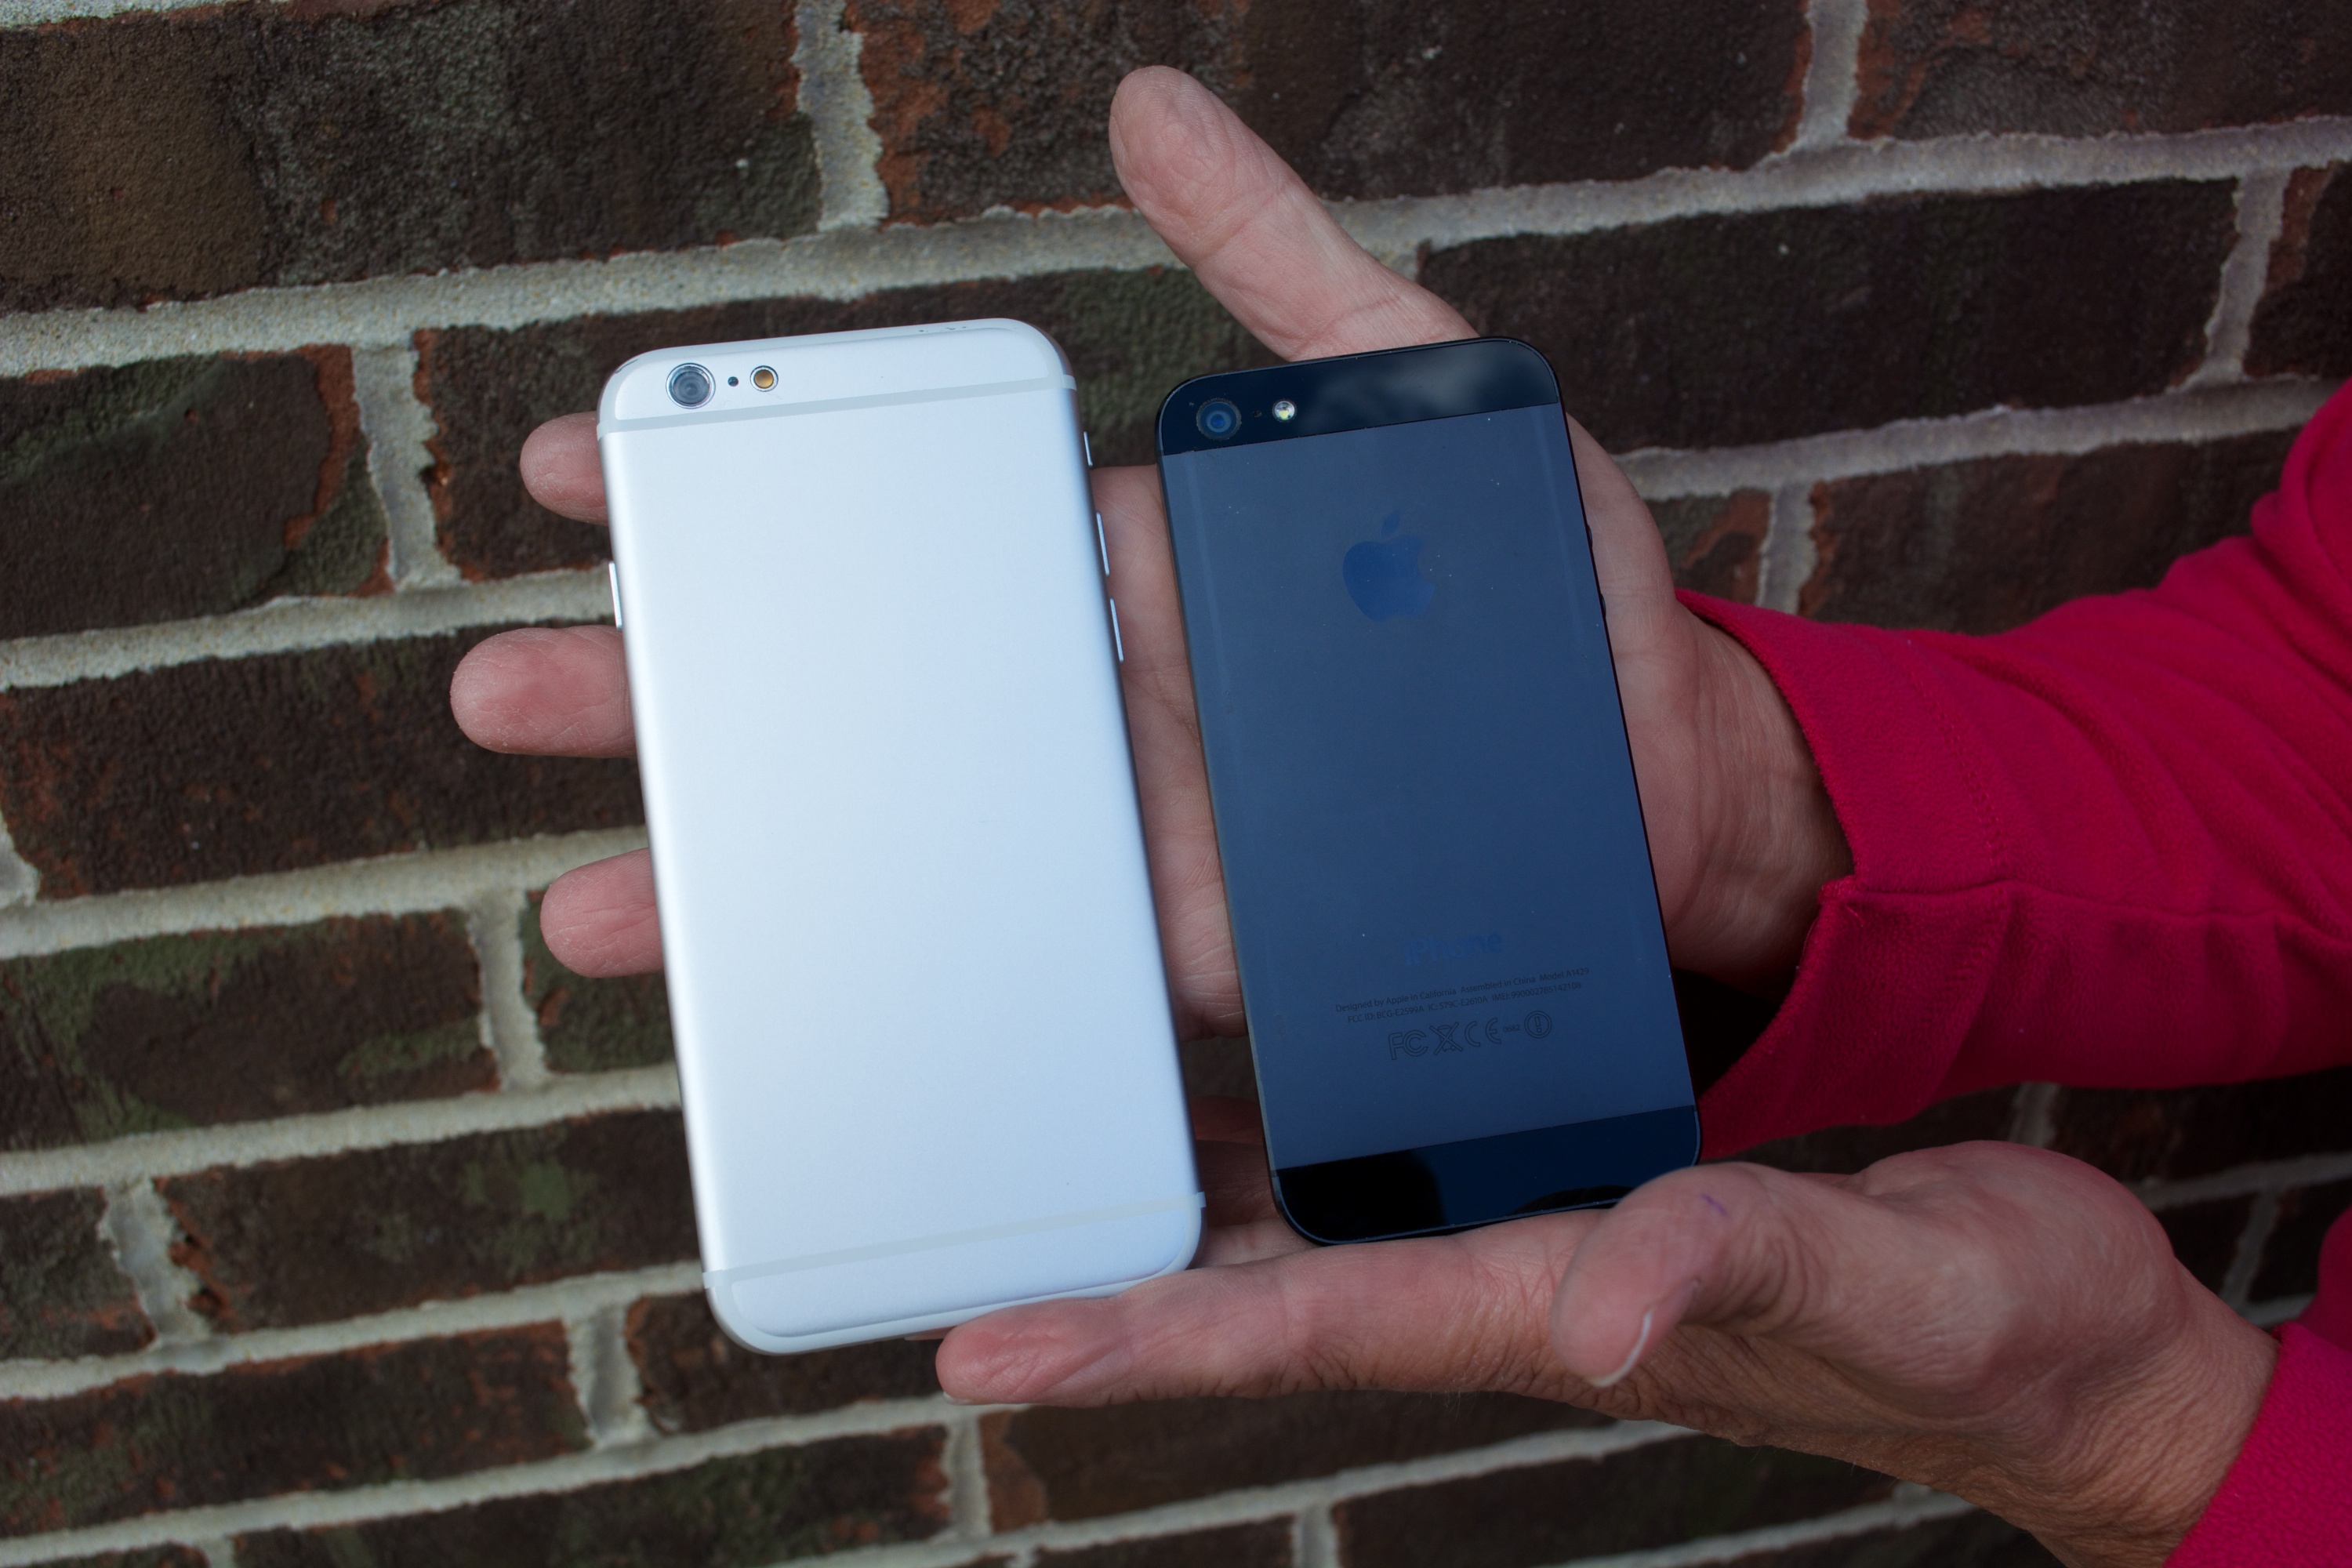 iPhone 6 vs iPhone 5 Video: 5 Key DifferencesIphone 5 6 7